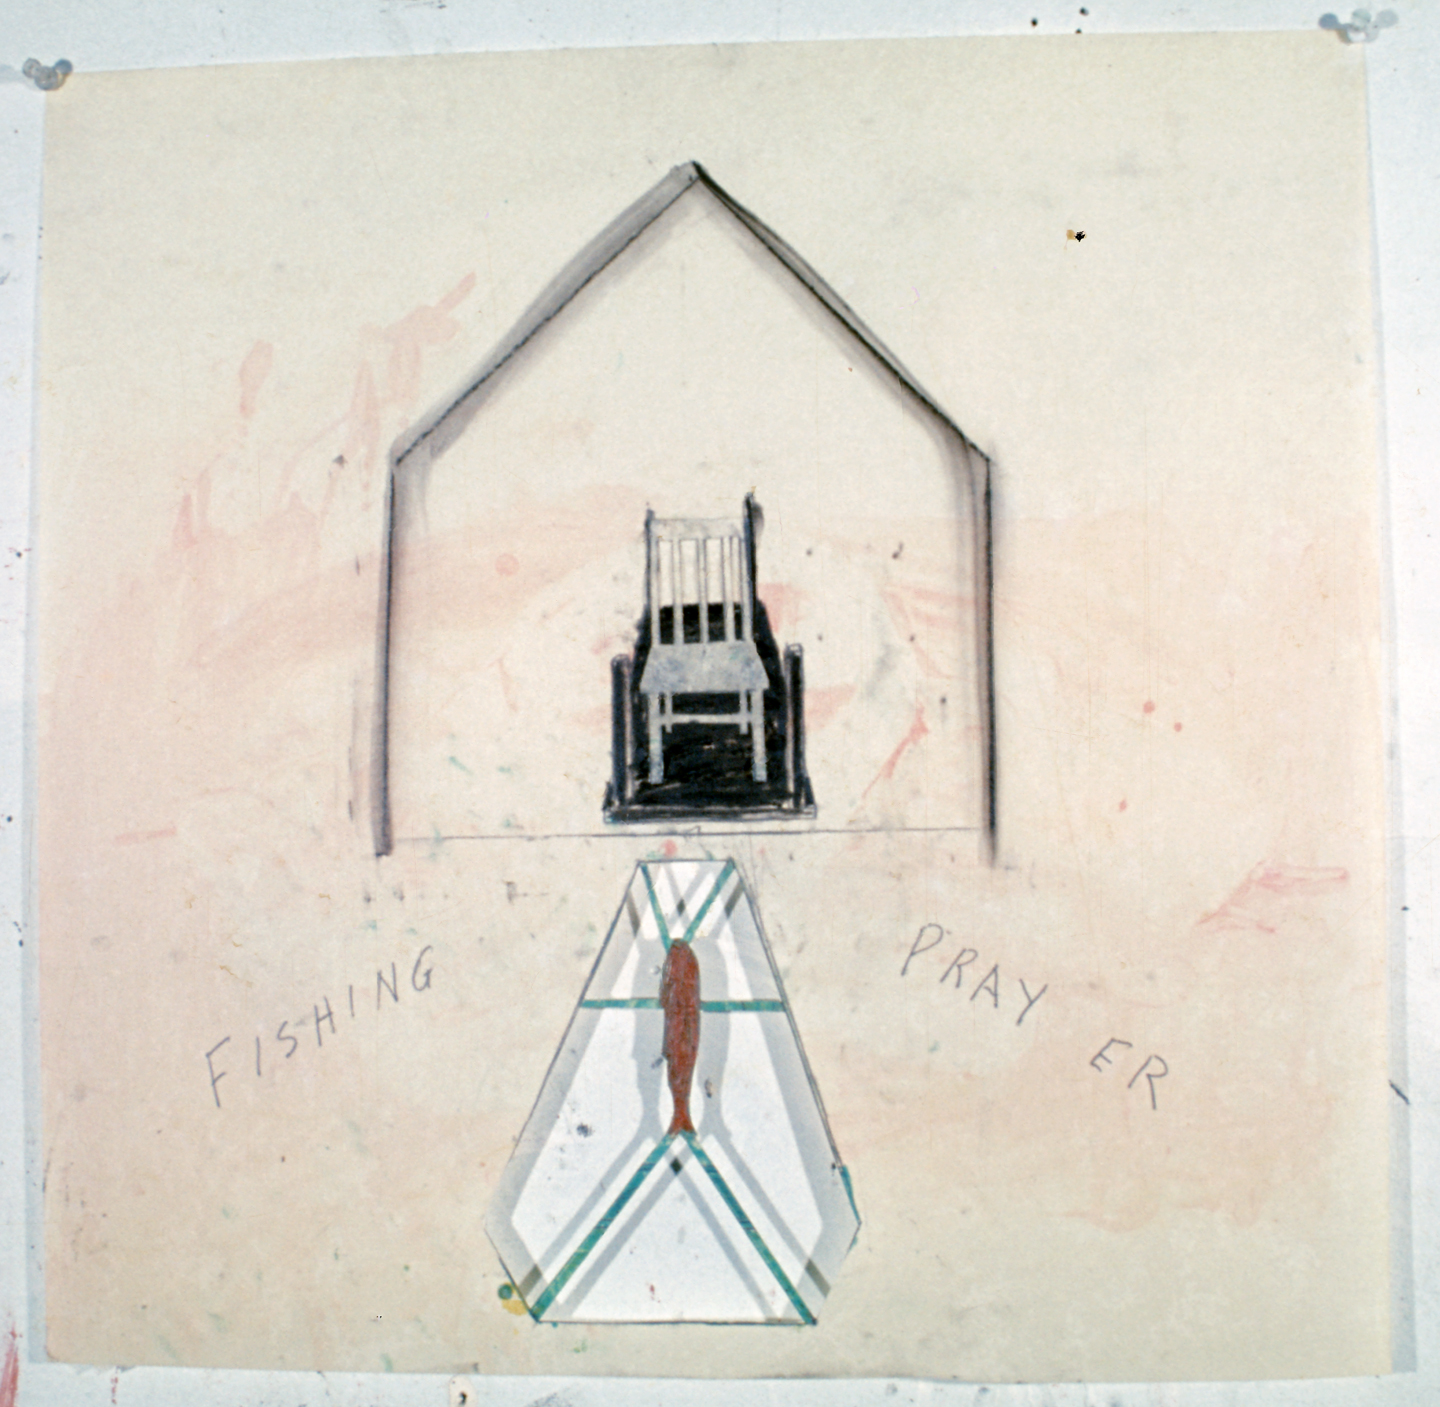 Untitled (Fishing Pray er), 1976. mixed media on paper, 21 3/4 x 21 3/4 in.